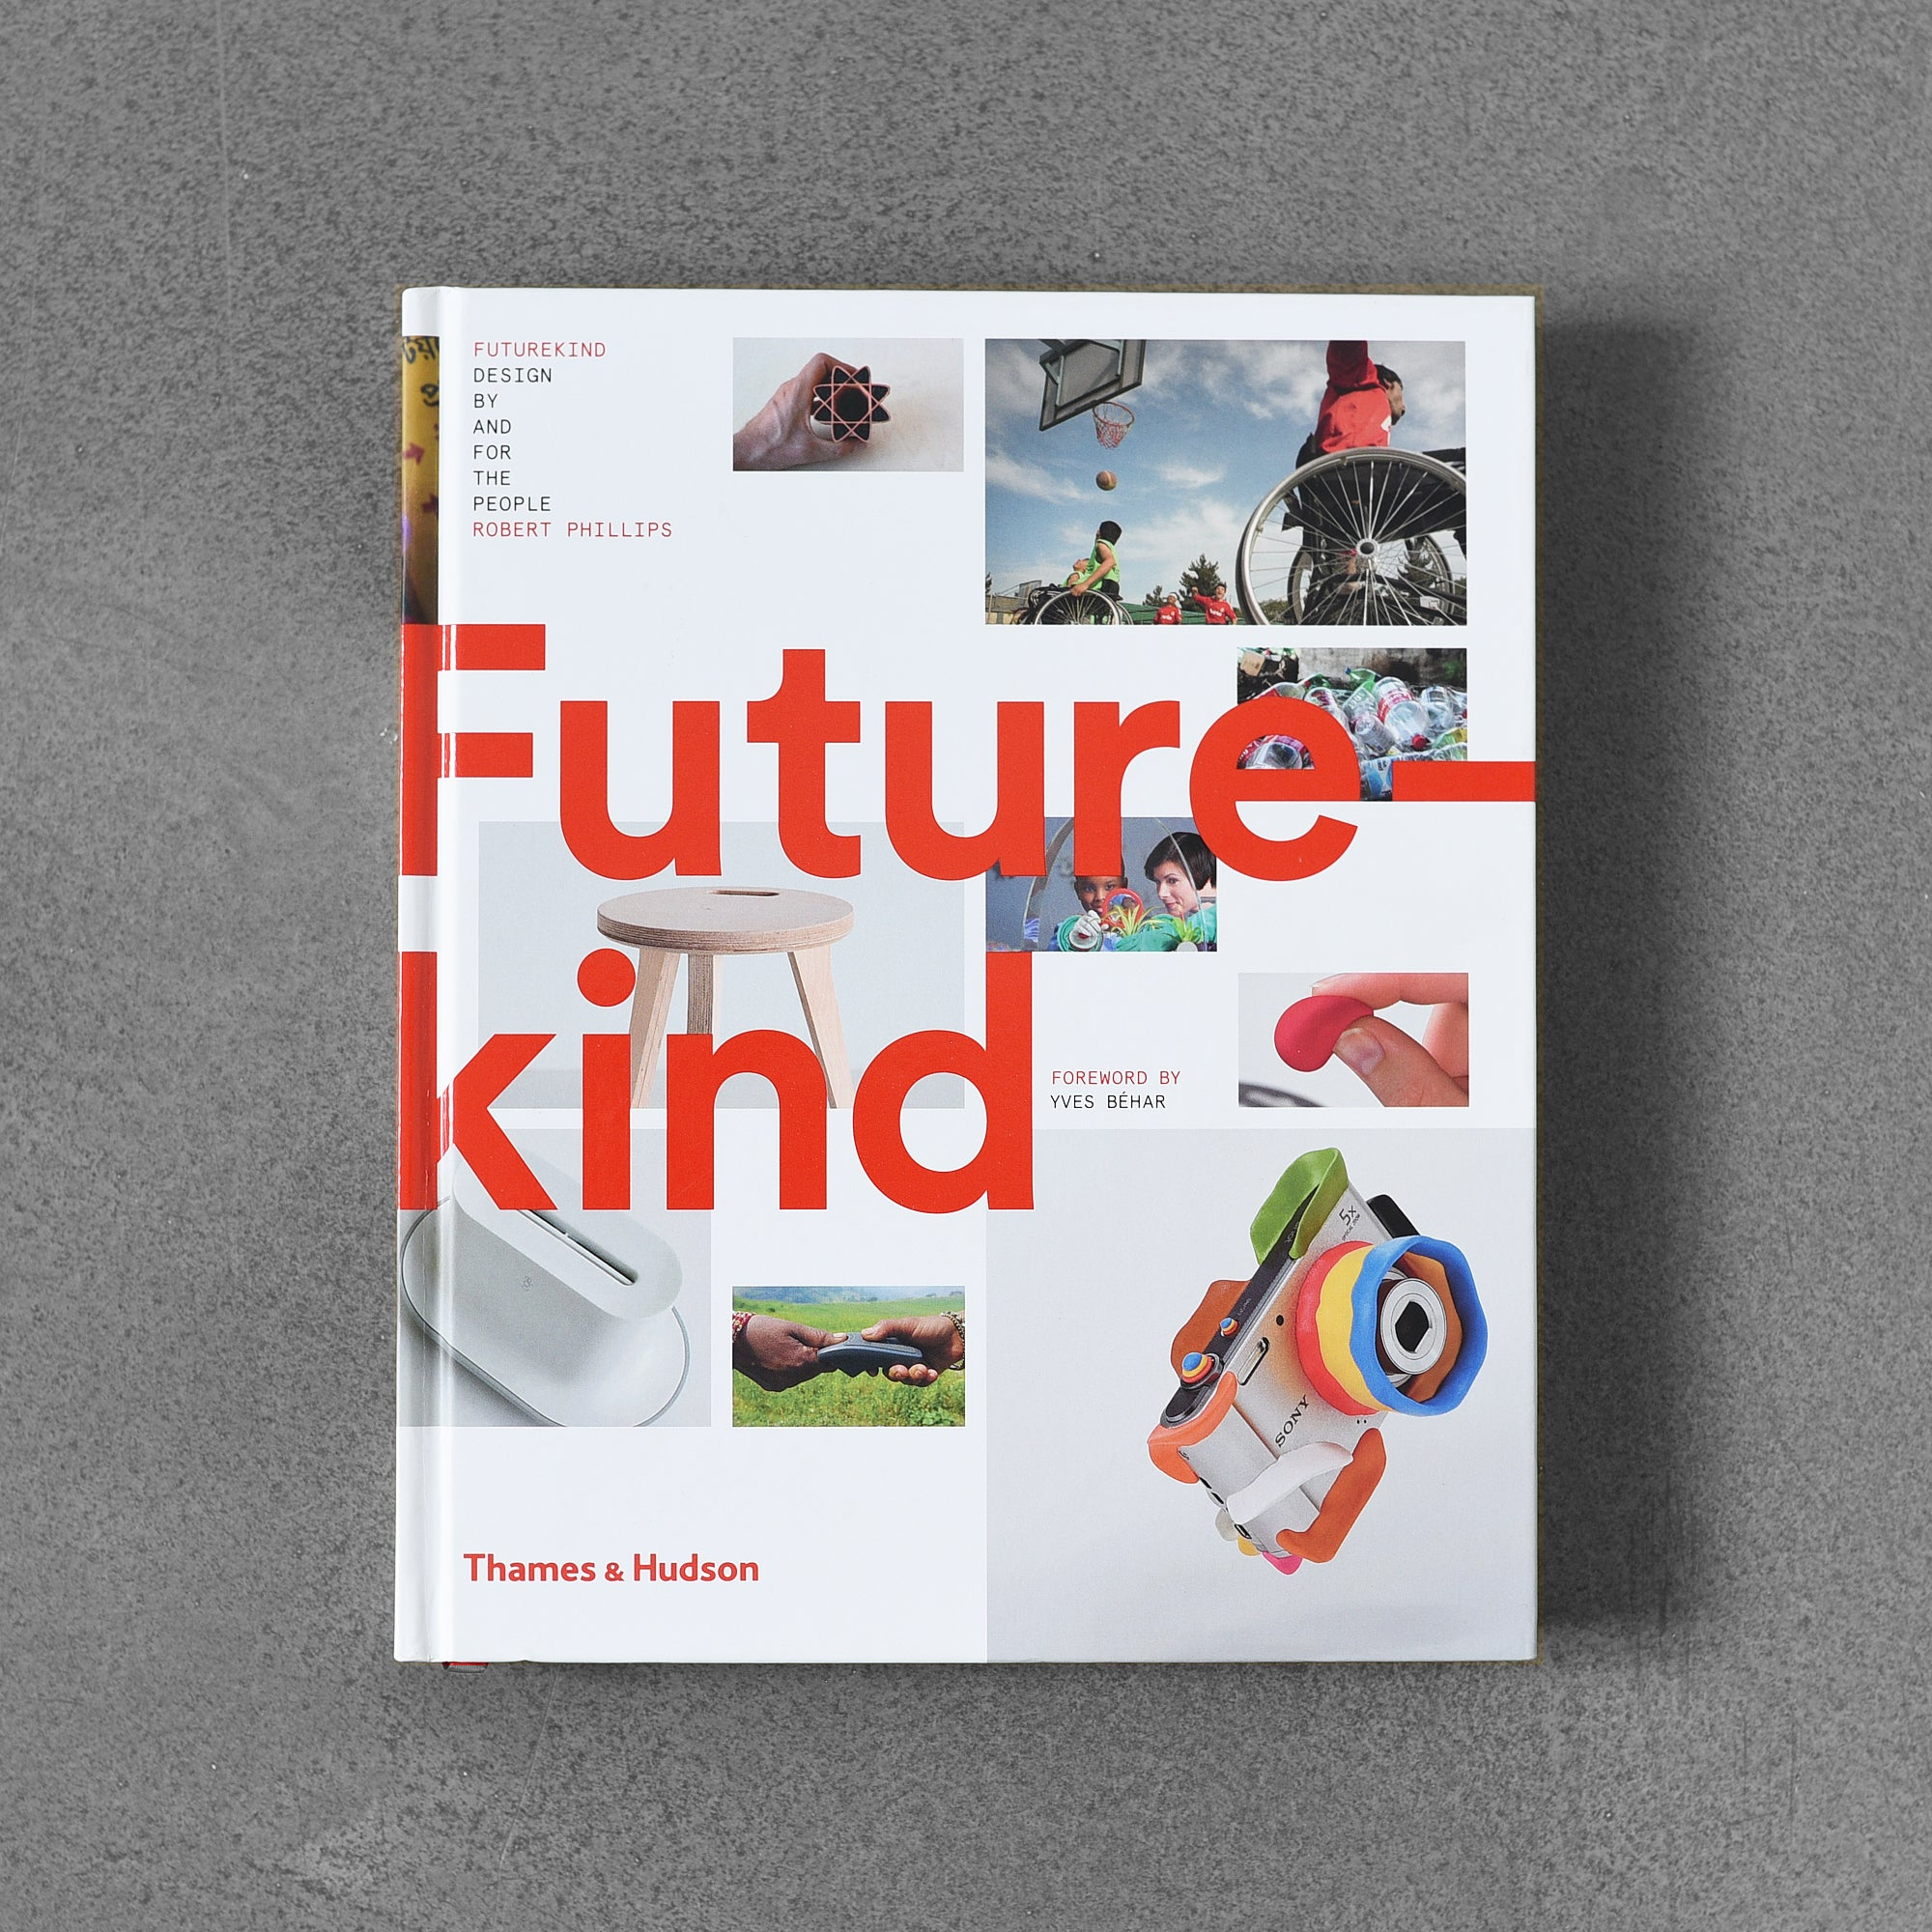 Future-kind: Design by and for the People